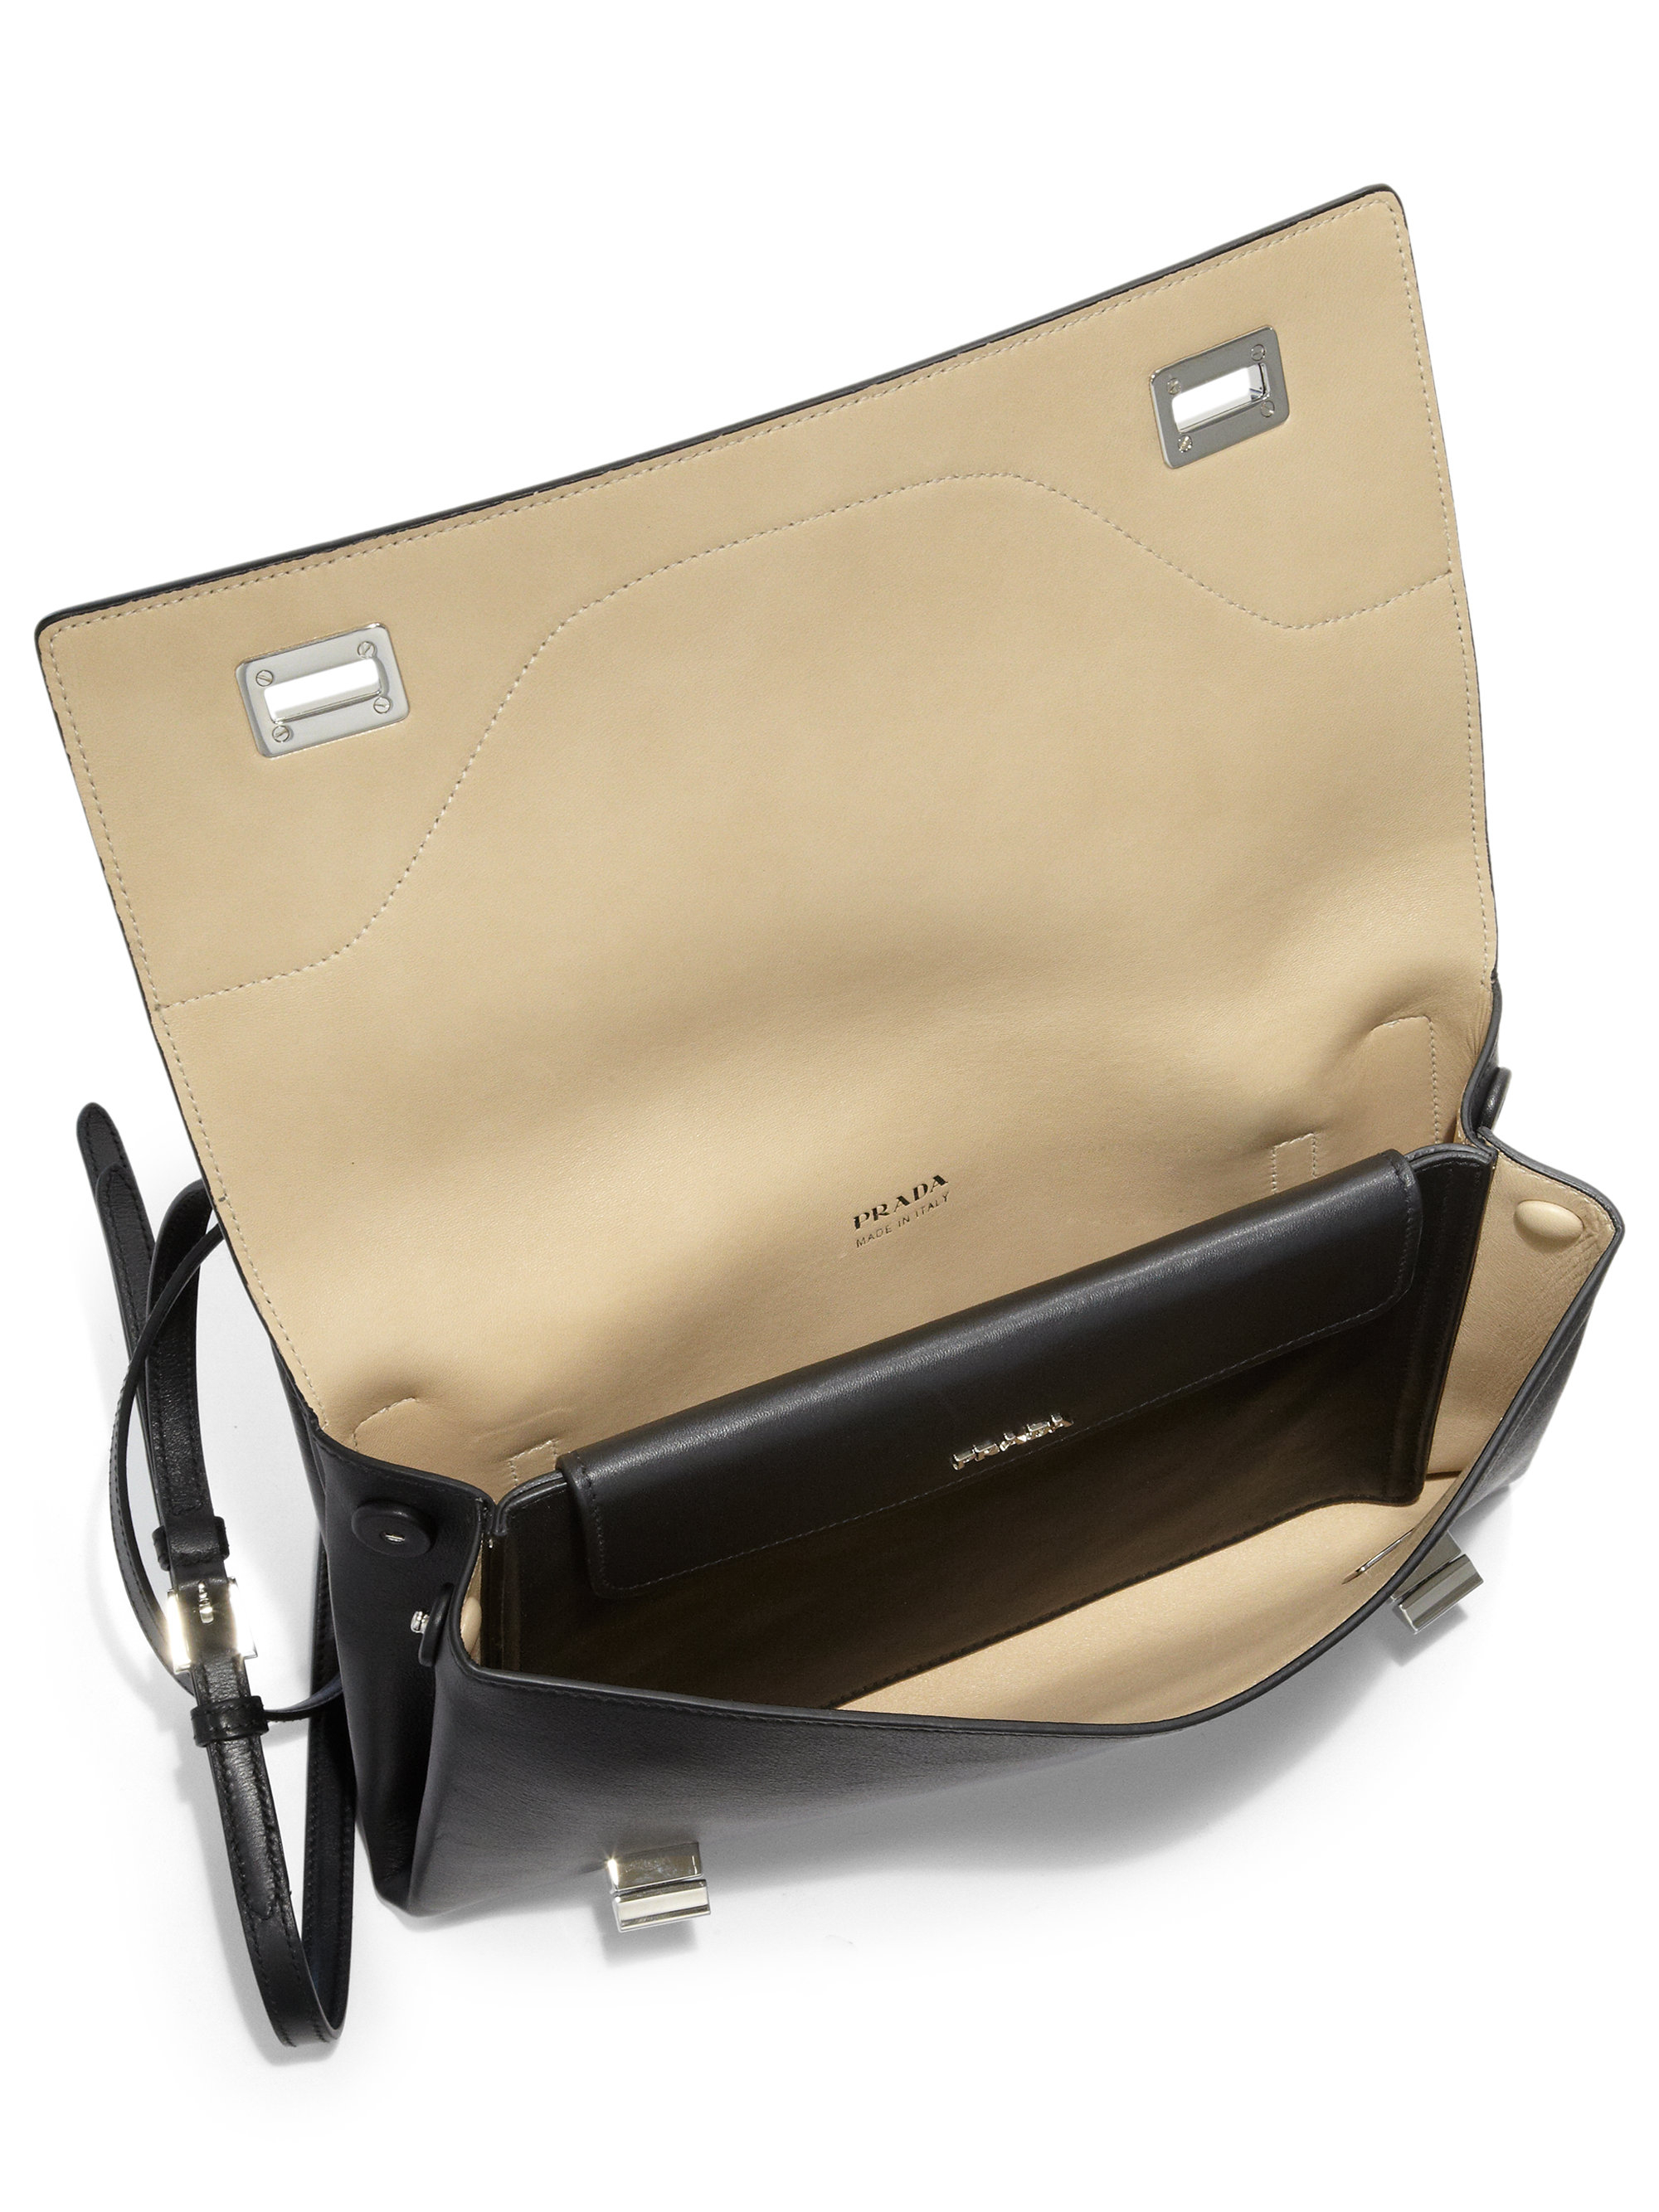 bf4e0508b052 ... promo code for lyst prada vitello soft double shoulder bag in black  0ff6d 3ea06 ...